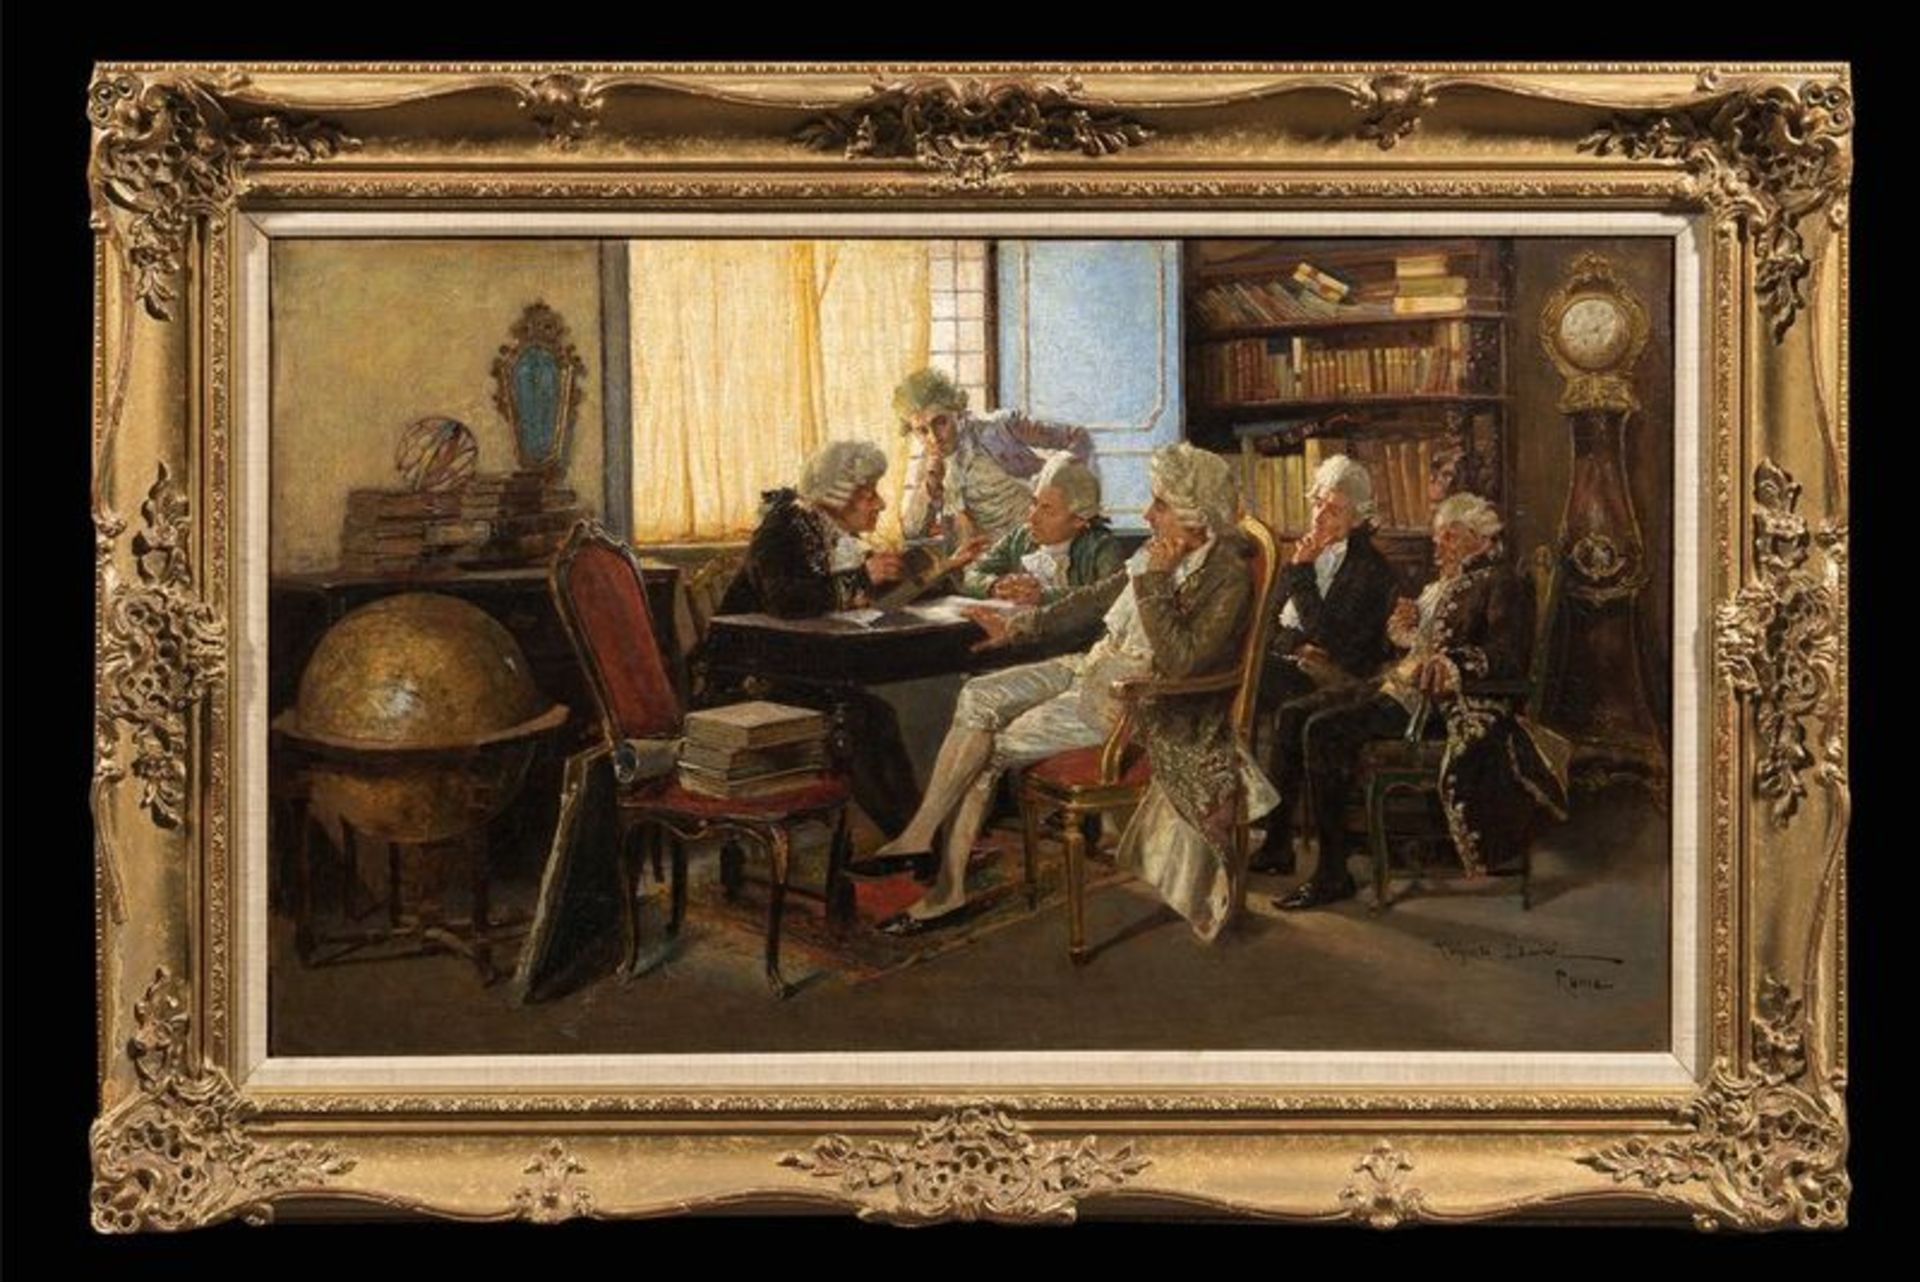 Los 520 - AUGUSTO DAINI (1860-1920) The Dilettanti Society in Rome, Italy - Signed [...]